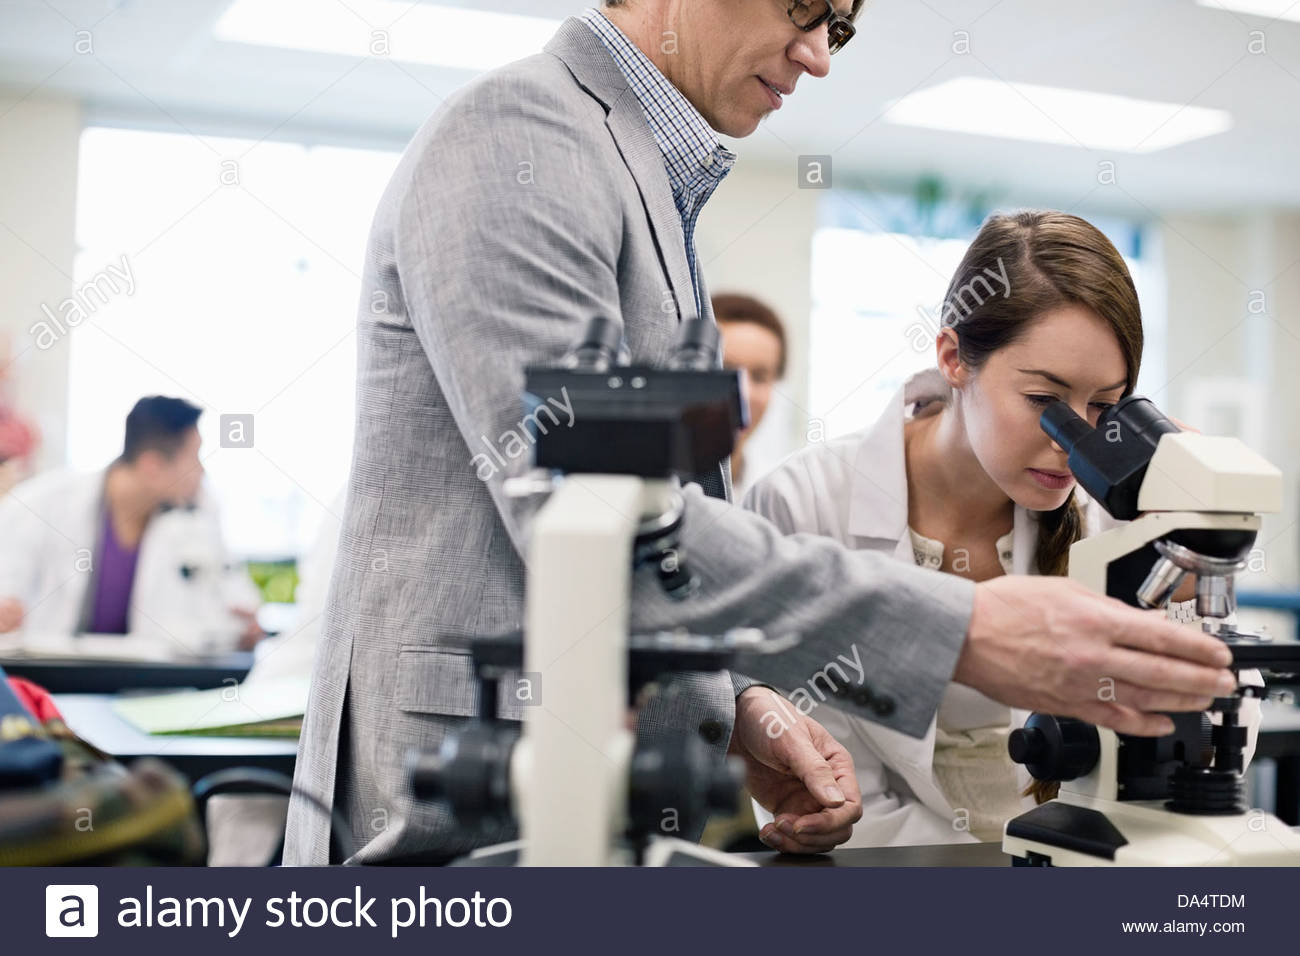 Professor helping female student with microscope in college science lab - Stock Image